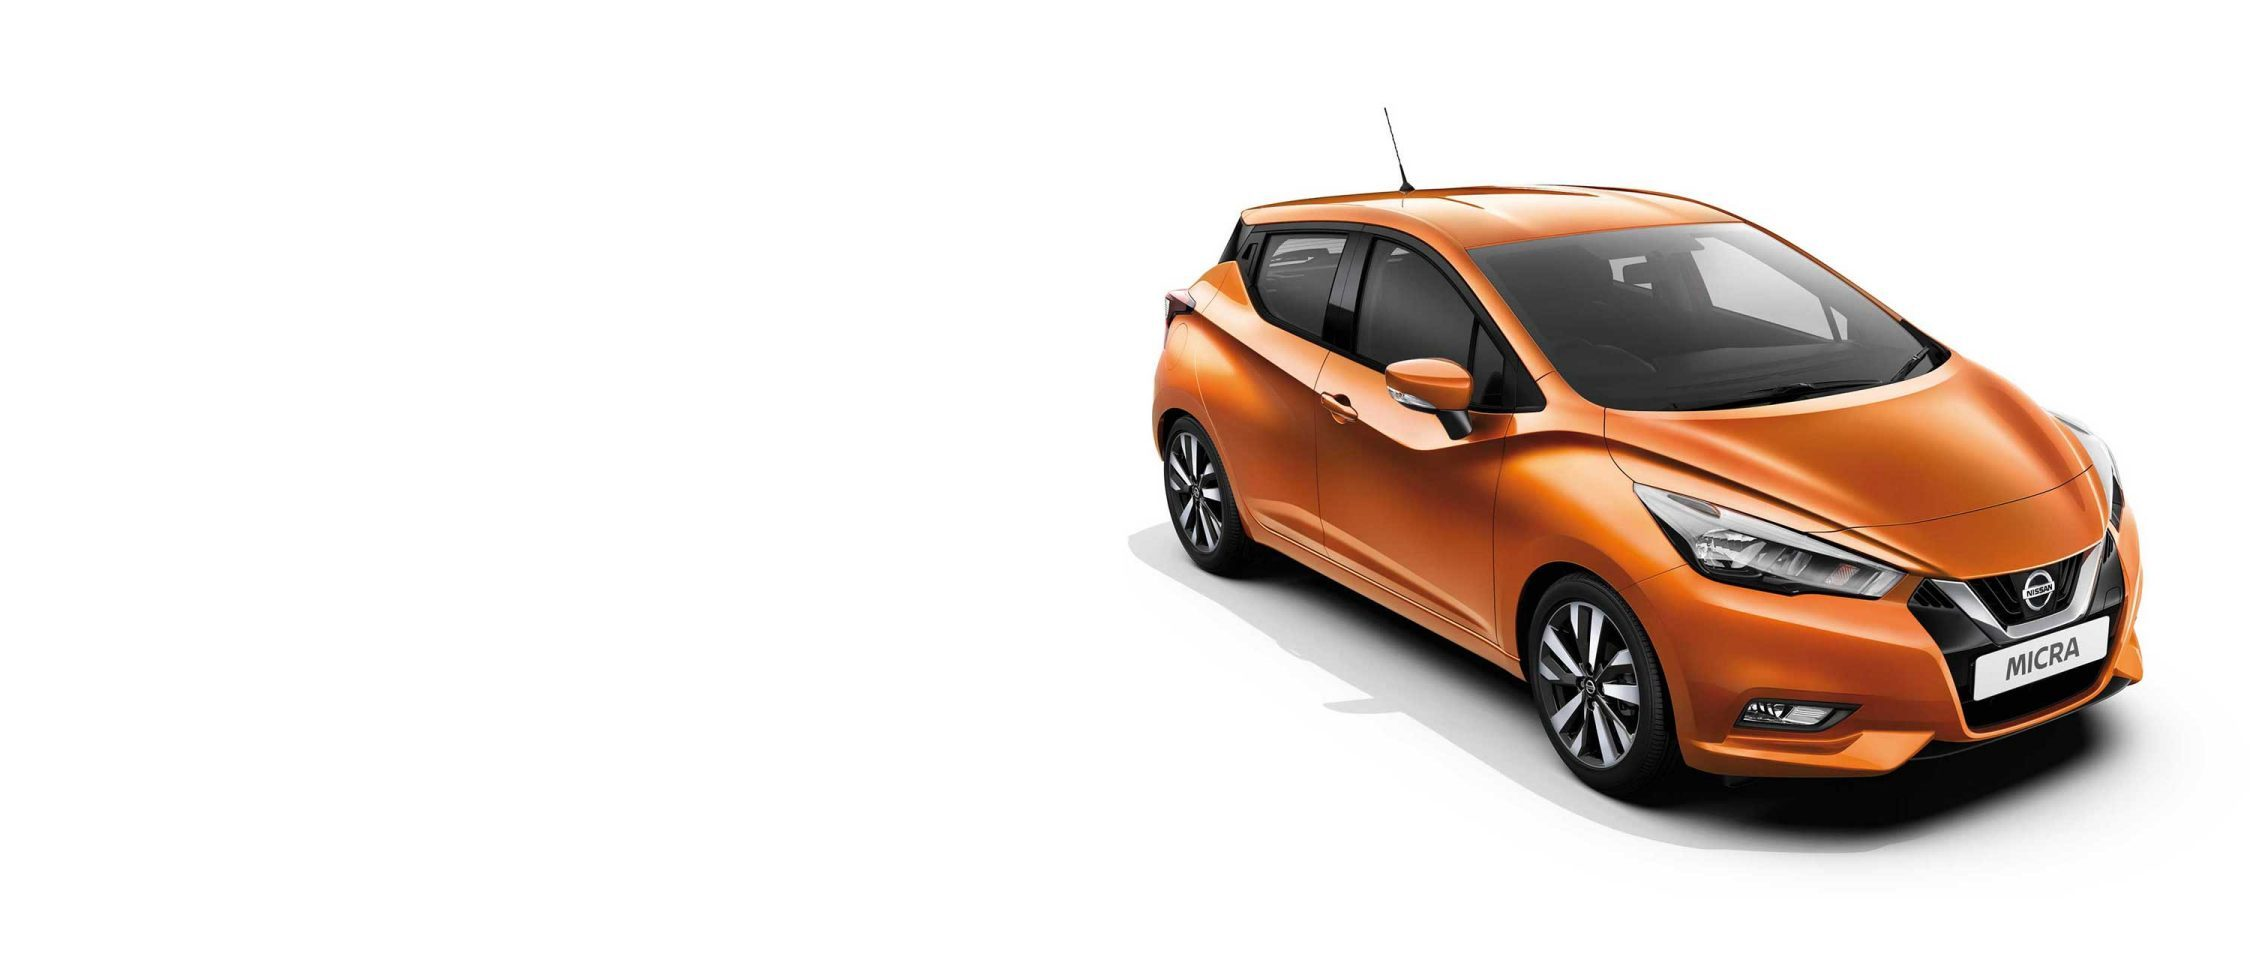 New MICRA Offers